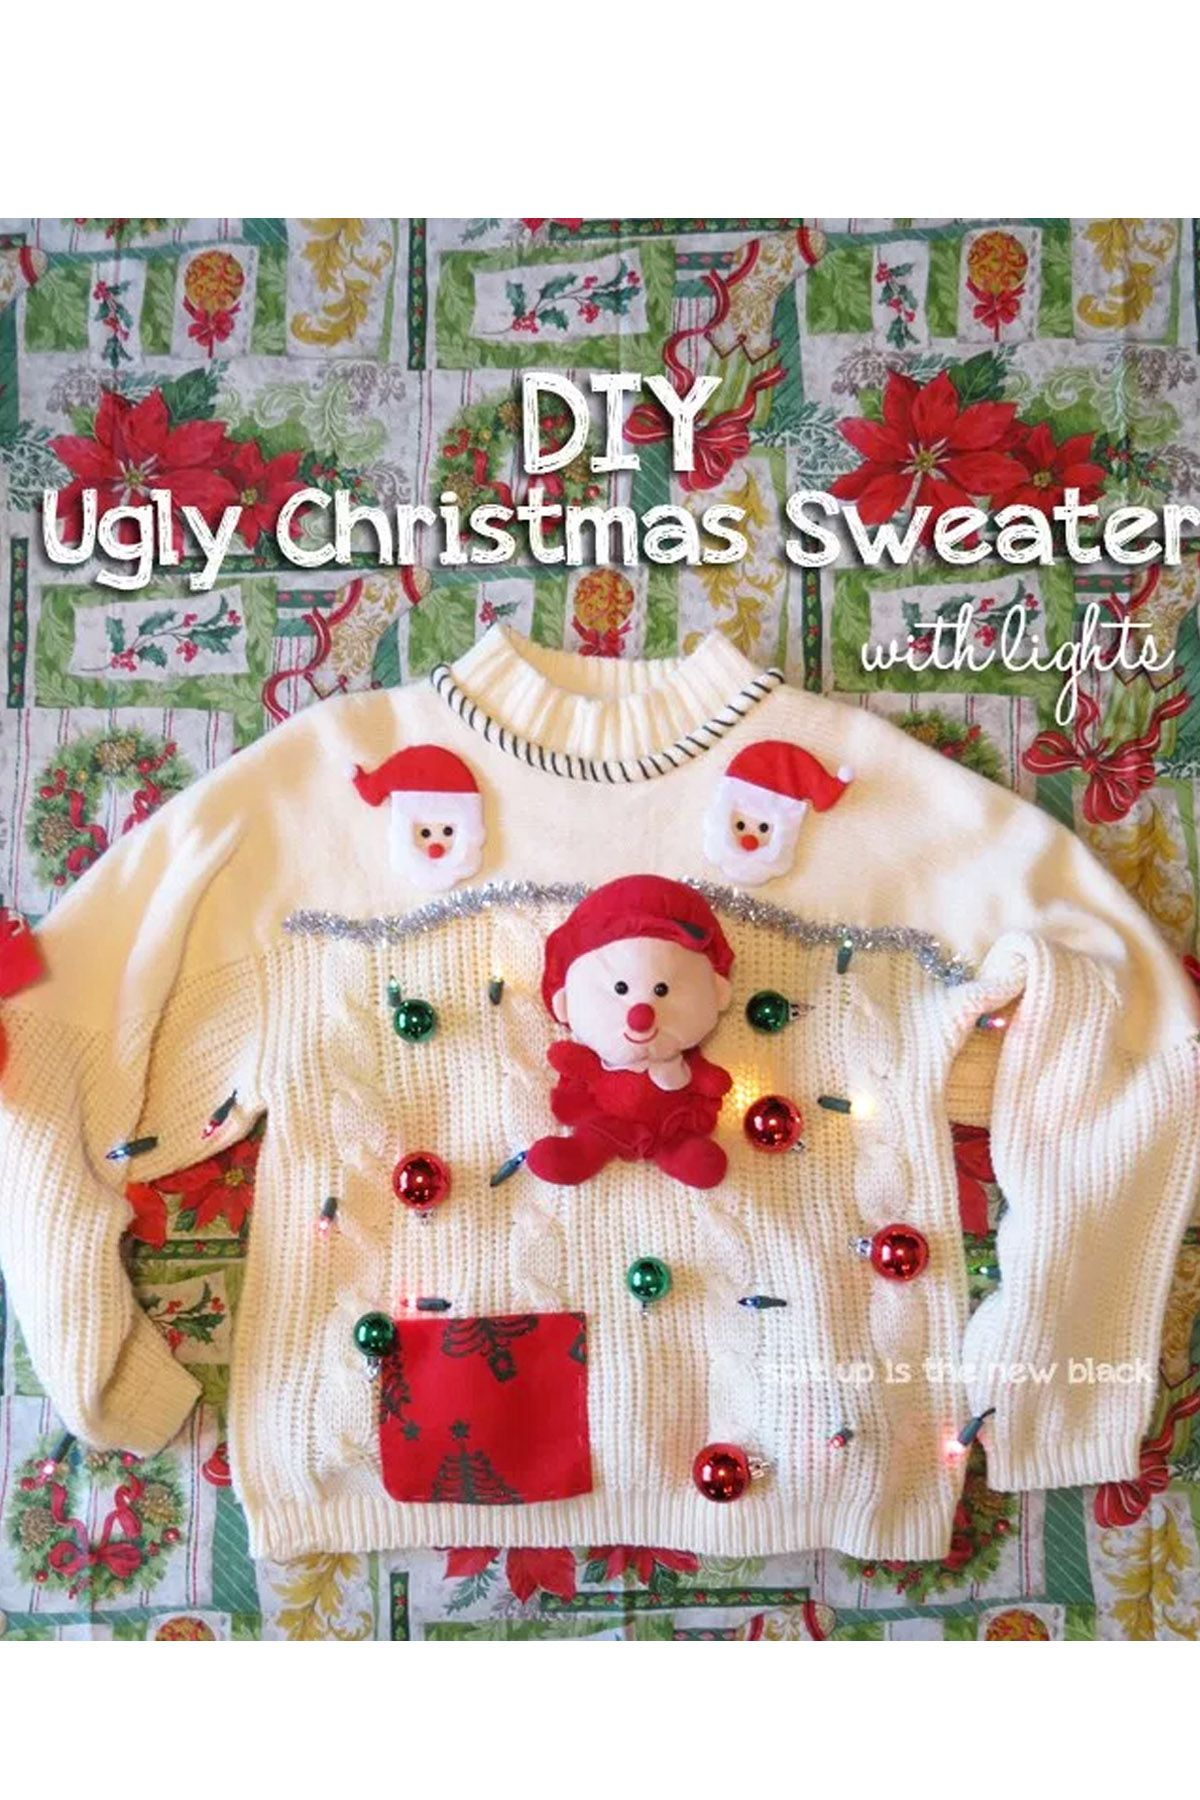 23 ugly christmas sweater ideas to buy and diy tacky christmas 23 ugly christmas sweater ideas to buy and diy tacky christmas sweaters for women solutioingenieria Choice Image